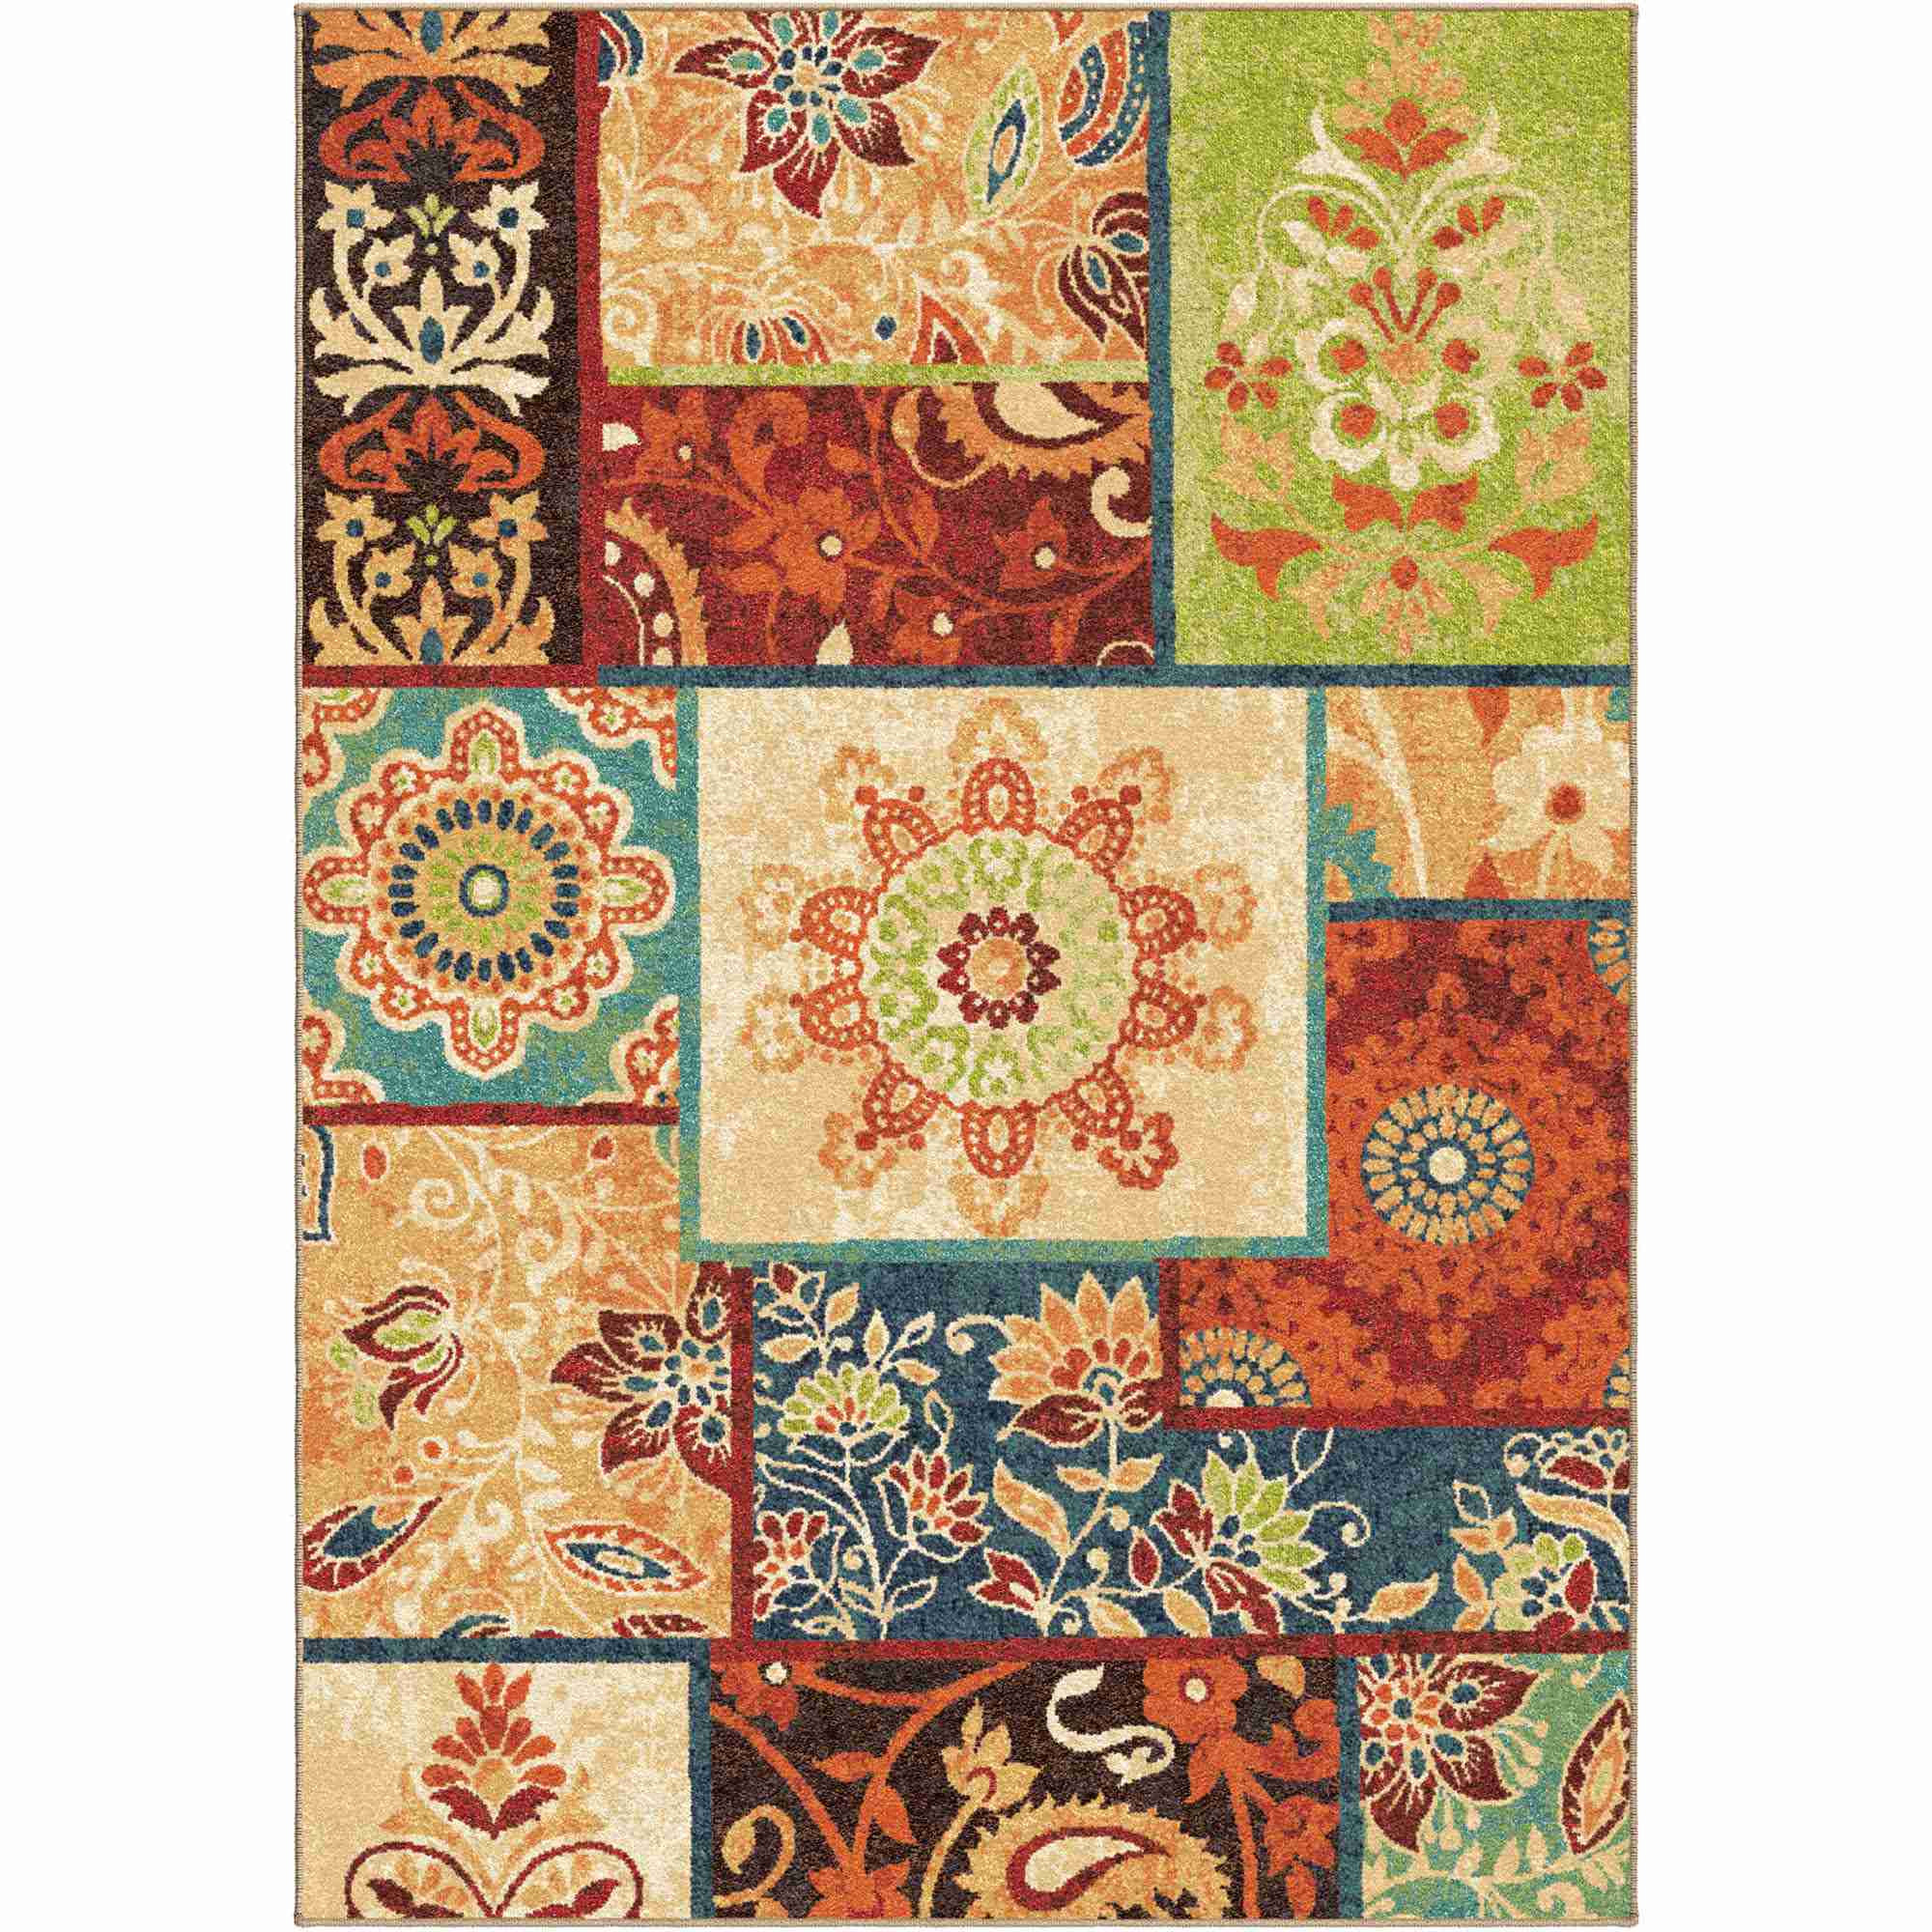 of rugs orion fresh photos rug elegant anderson orian graphics floor home sc inc